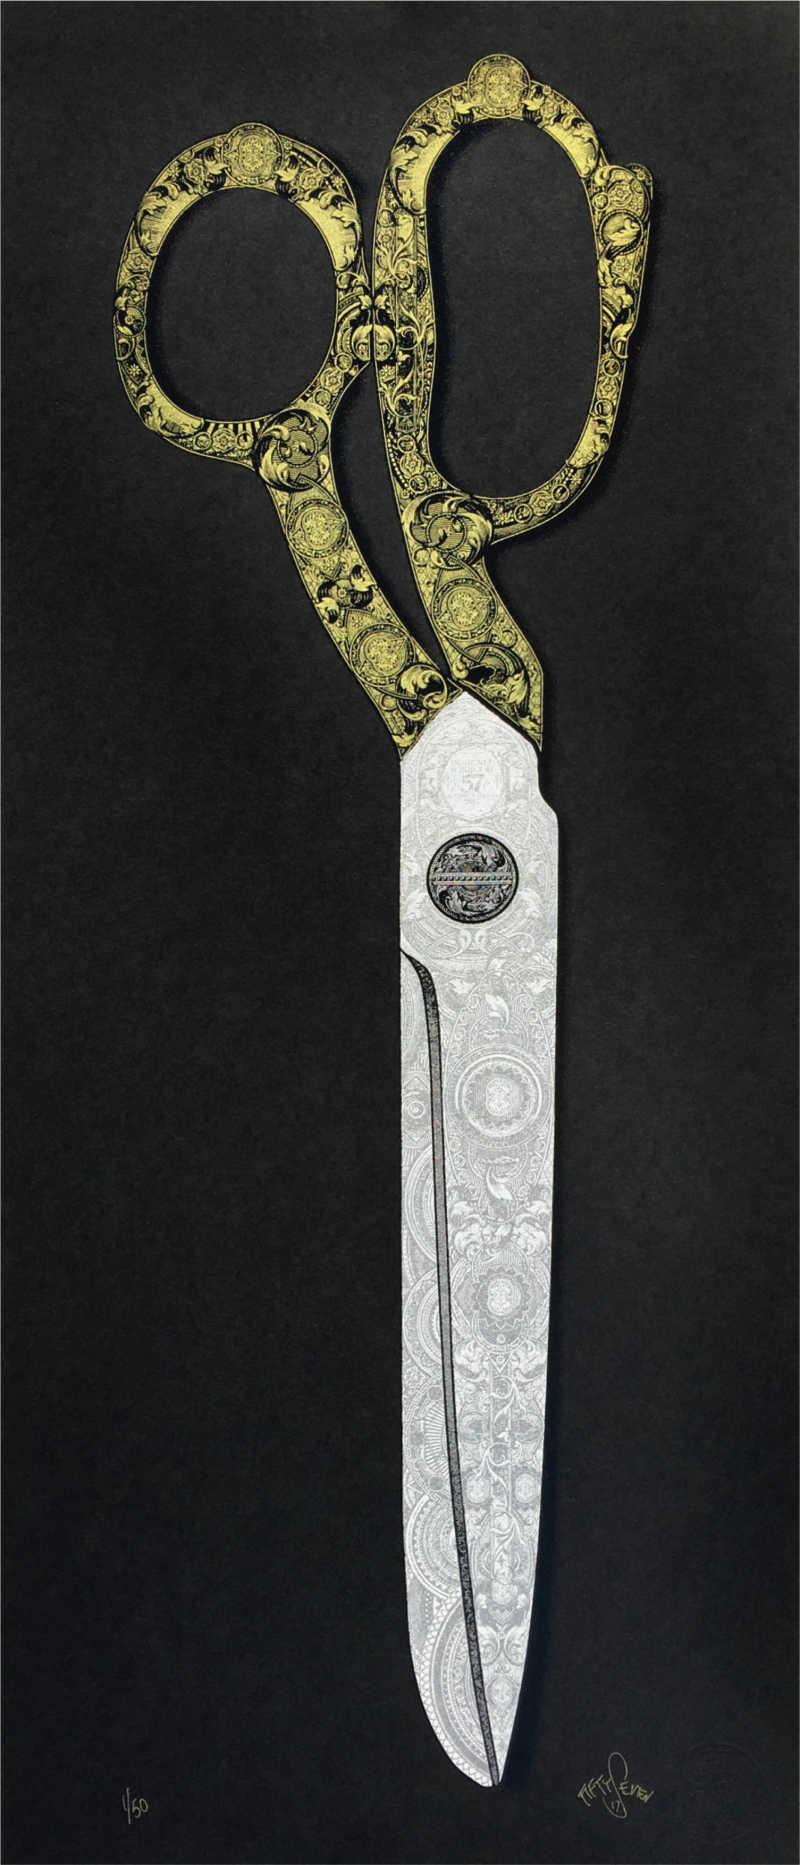 Fiftyseven/ Steve Mitchell, Scissors, Screen print. Edition of 50, 30x70cm, £150, 2018